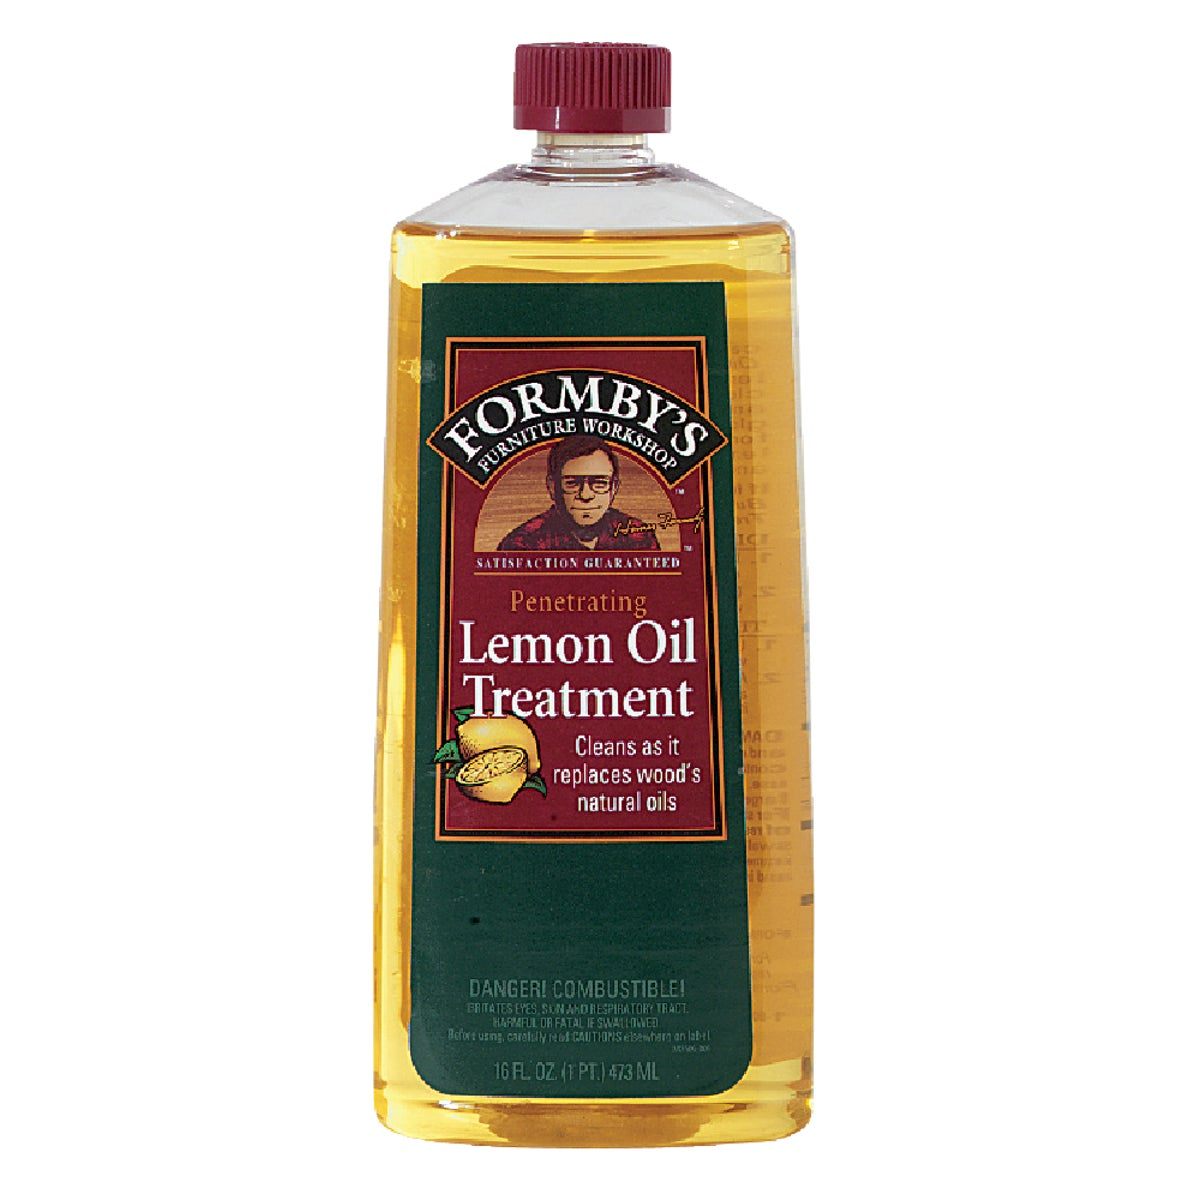 16OZ LEMON OIL TREATMENT - 30115 by Minwax Company